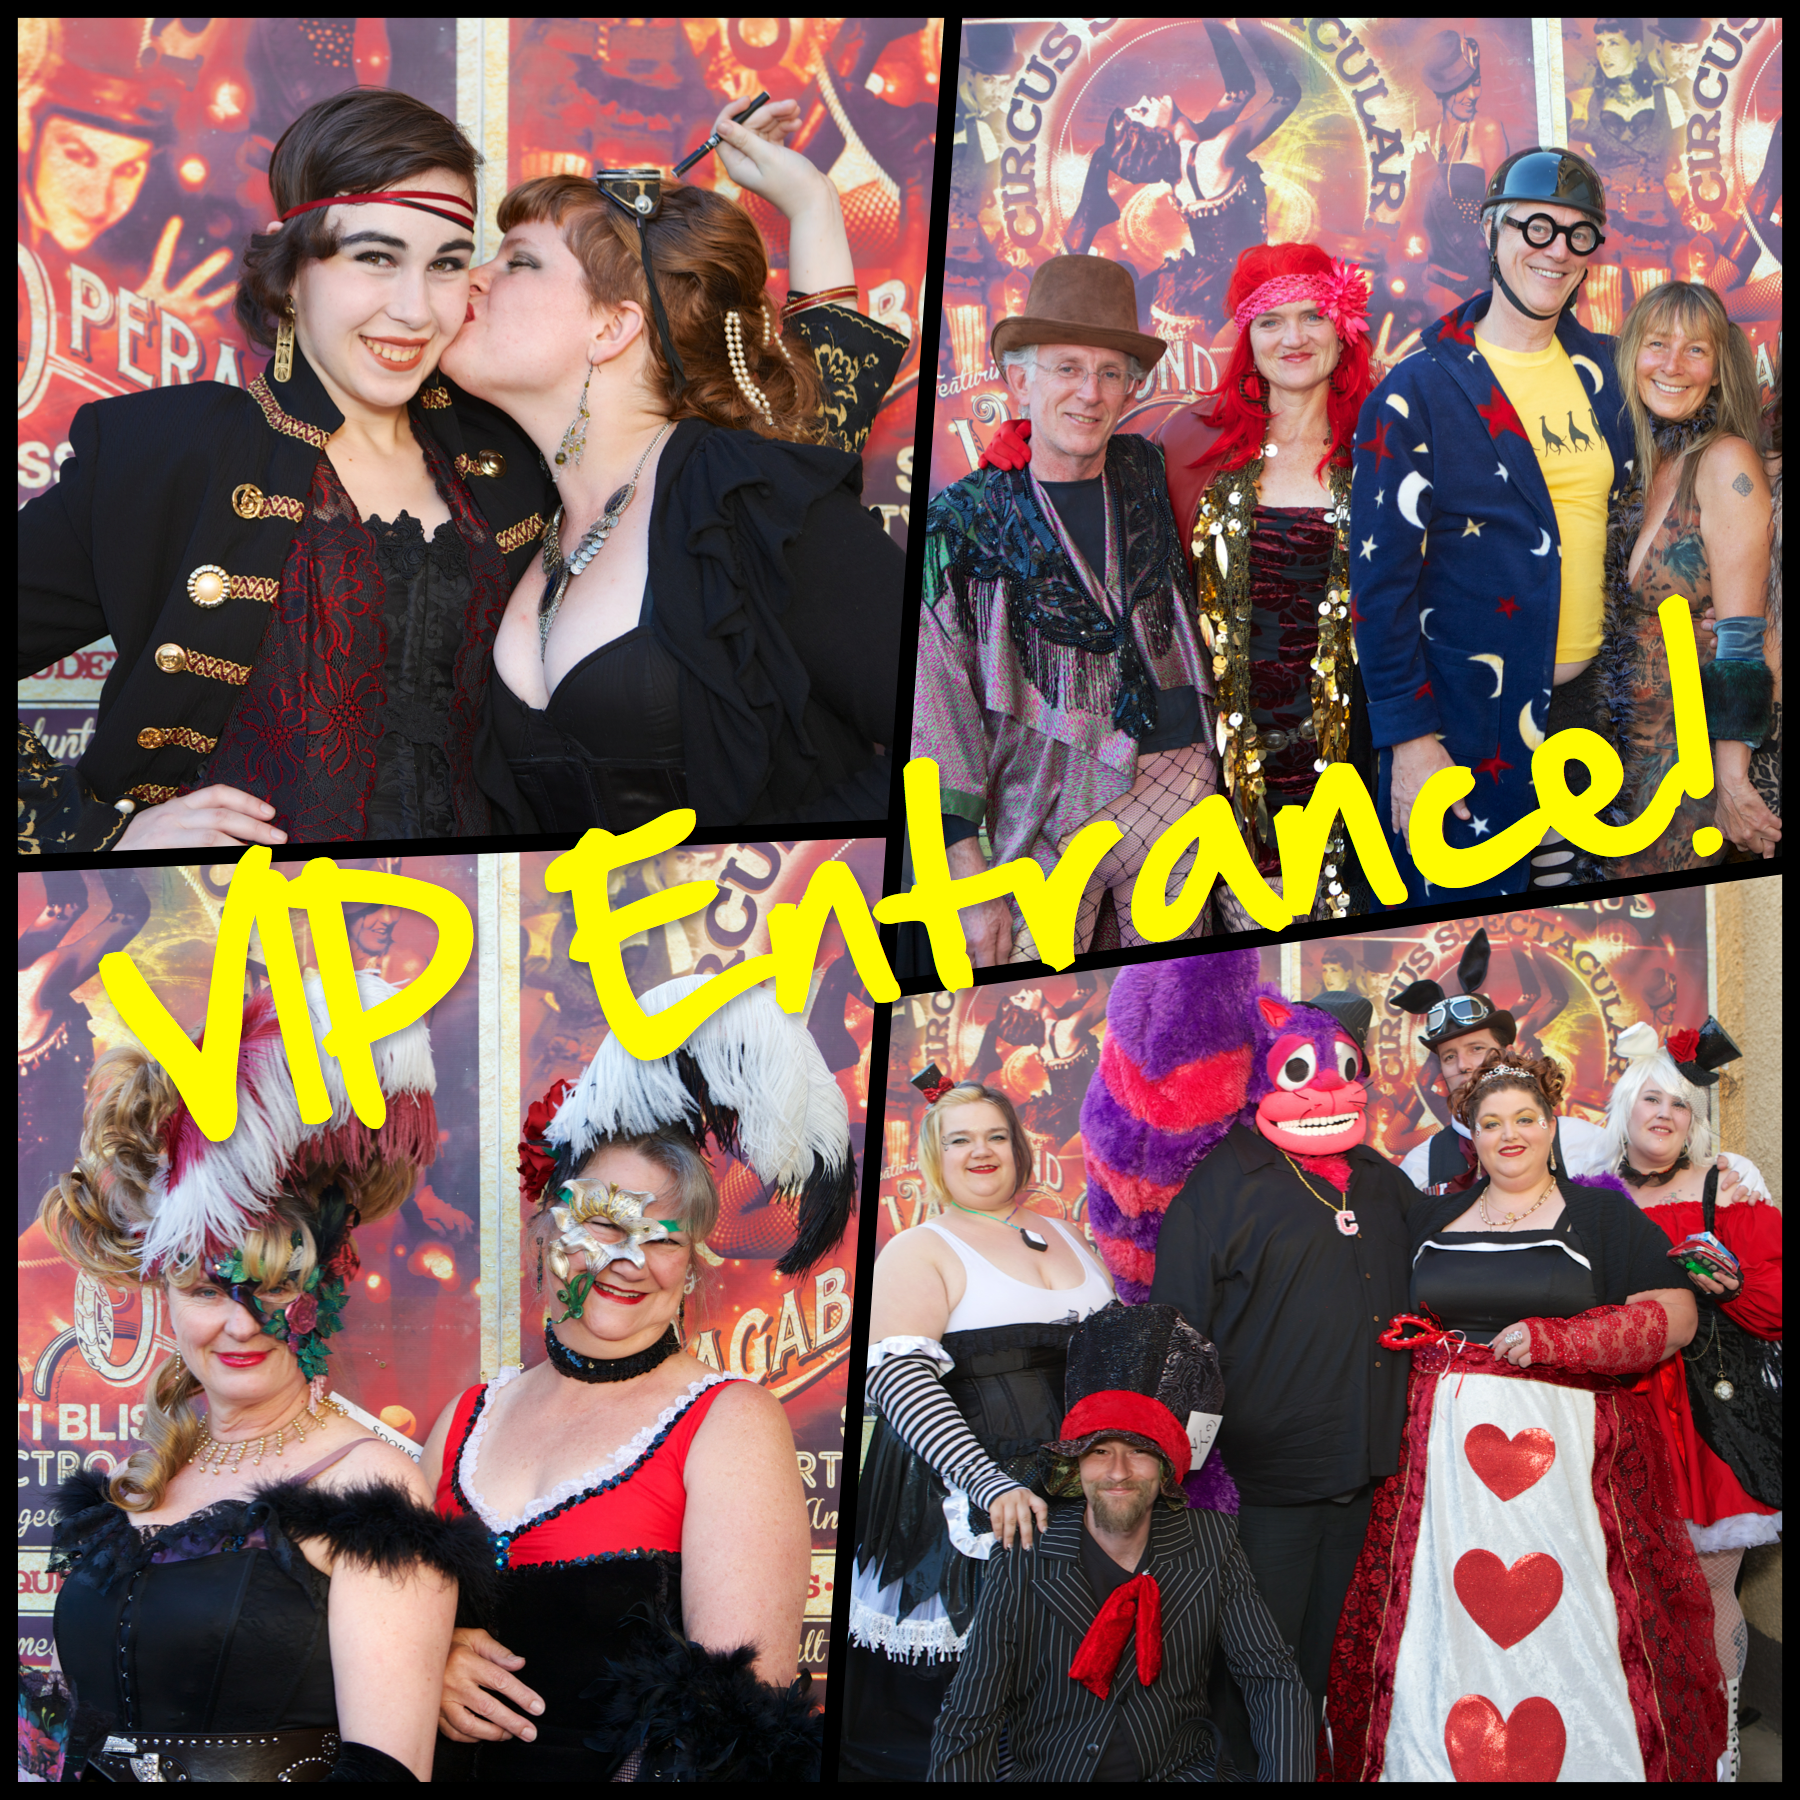 Click here to check out the VIP Entrance gallery!